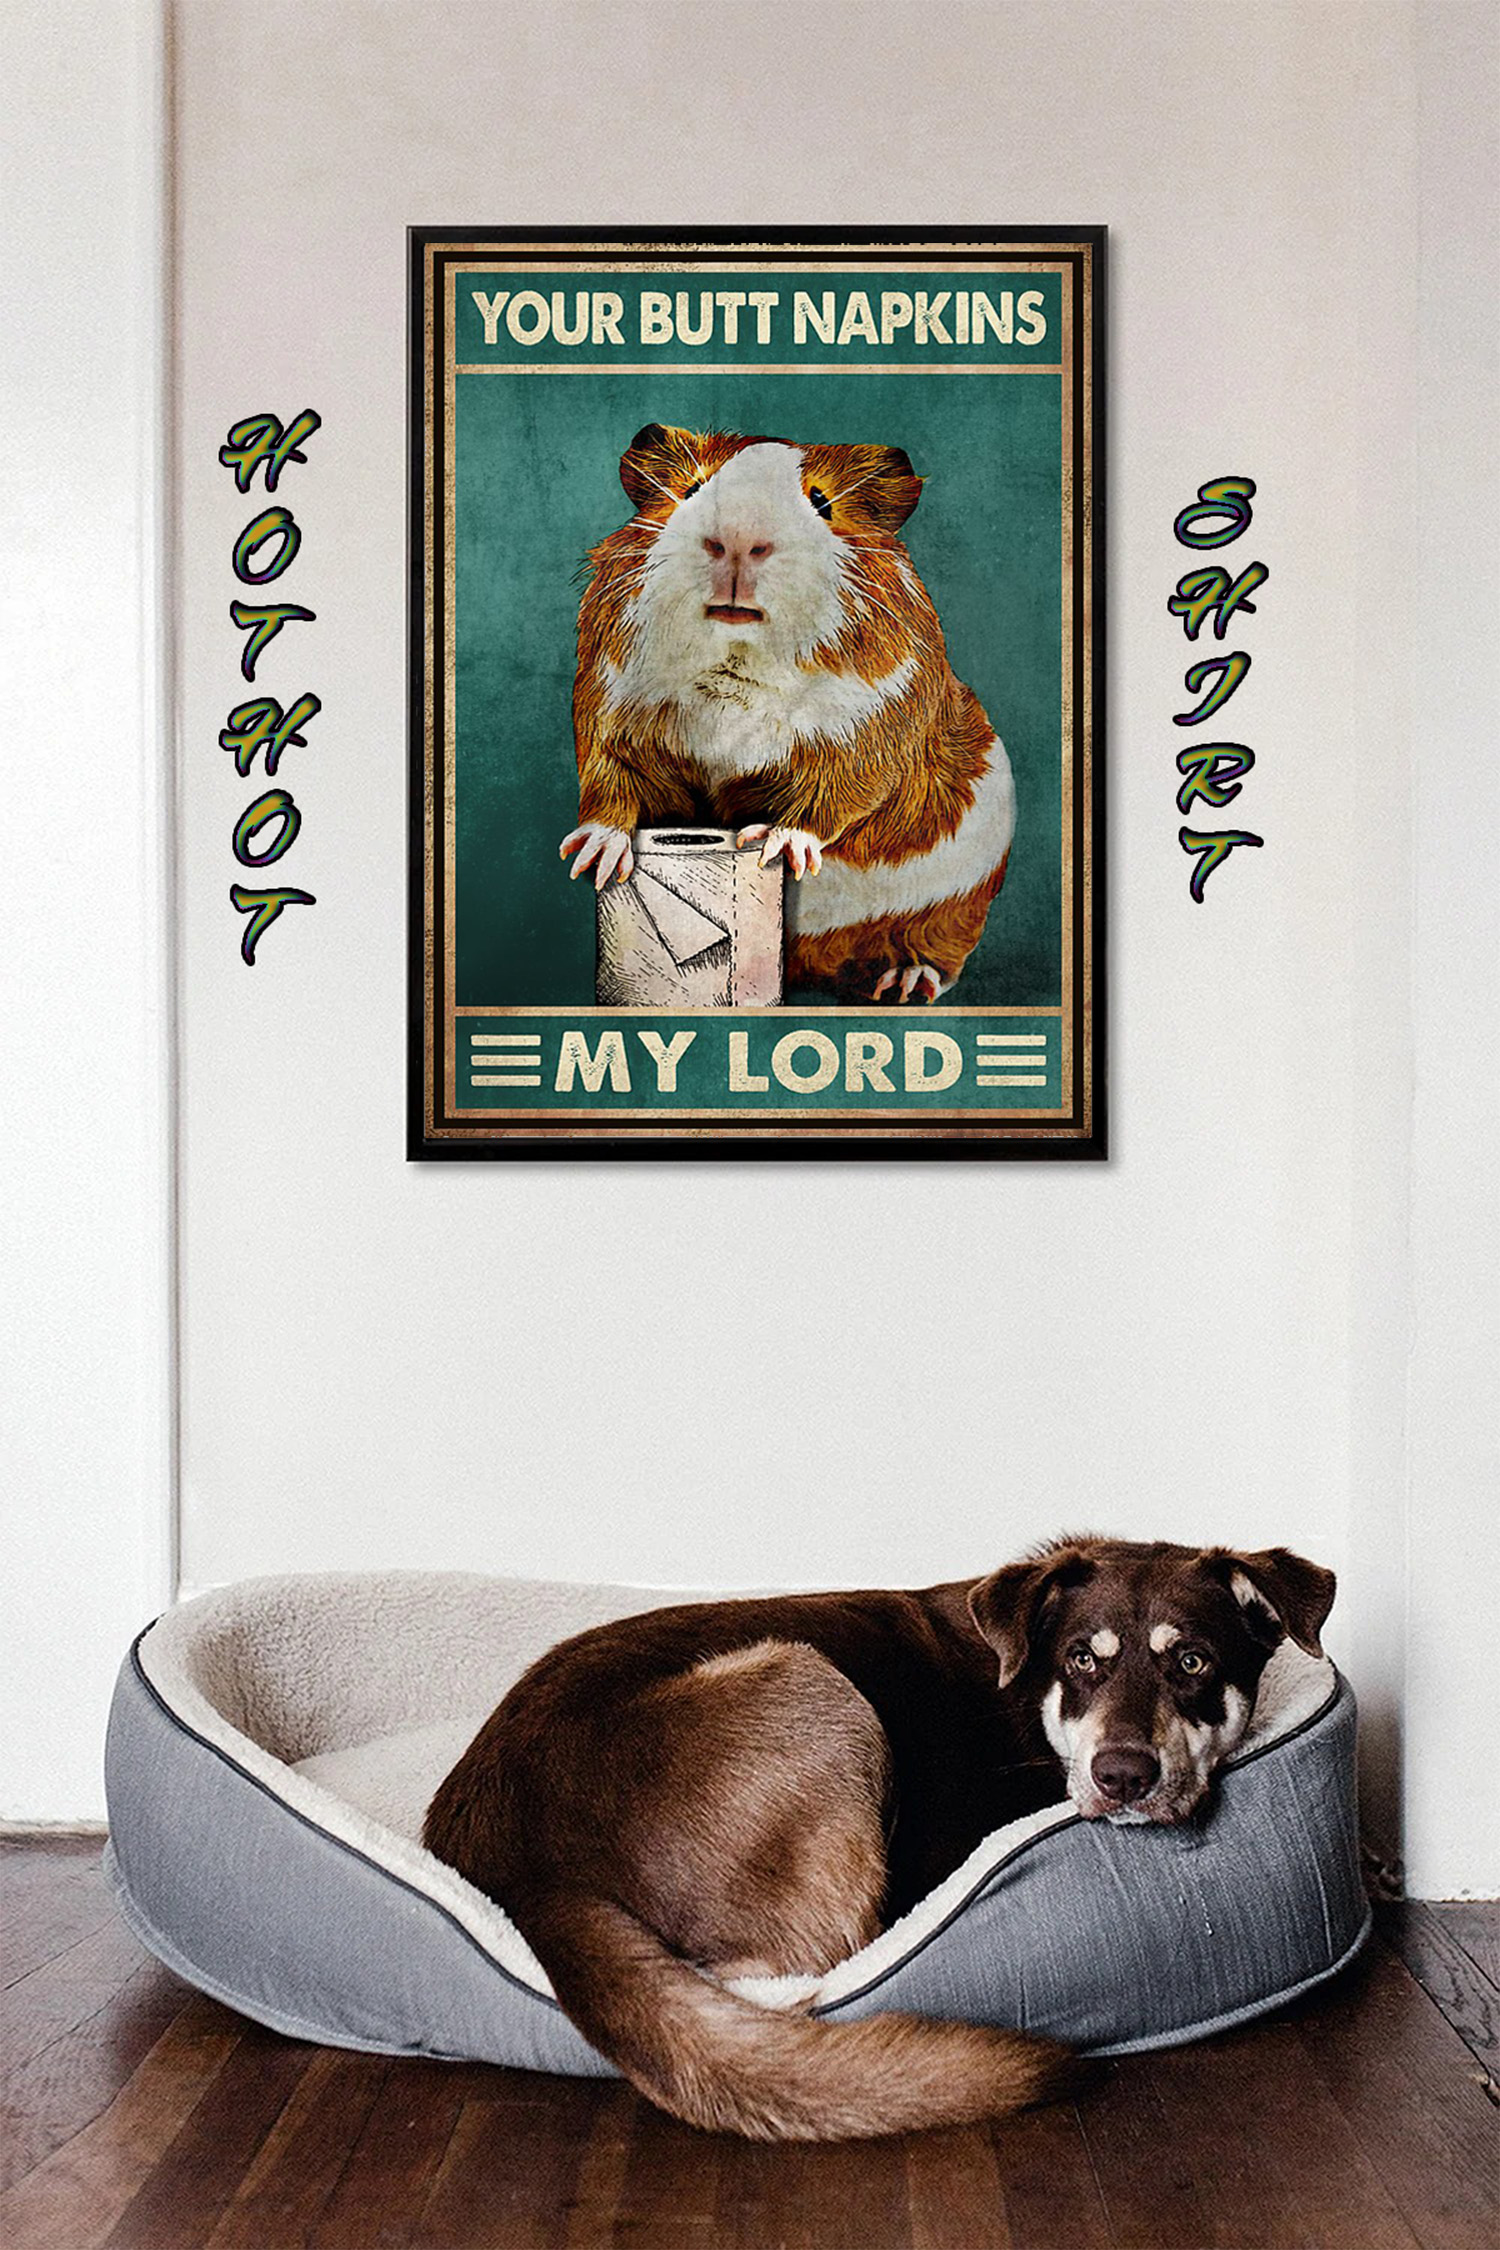 Hamster Guinea Pig Your Butt Napkins My Lord poster 1